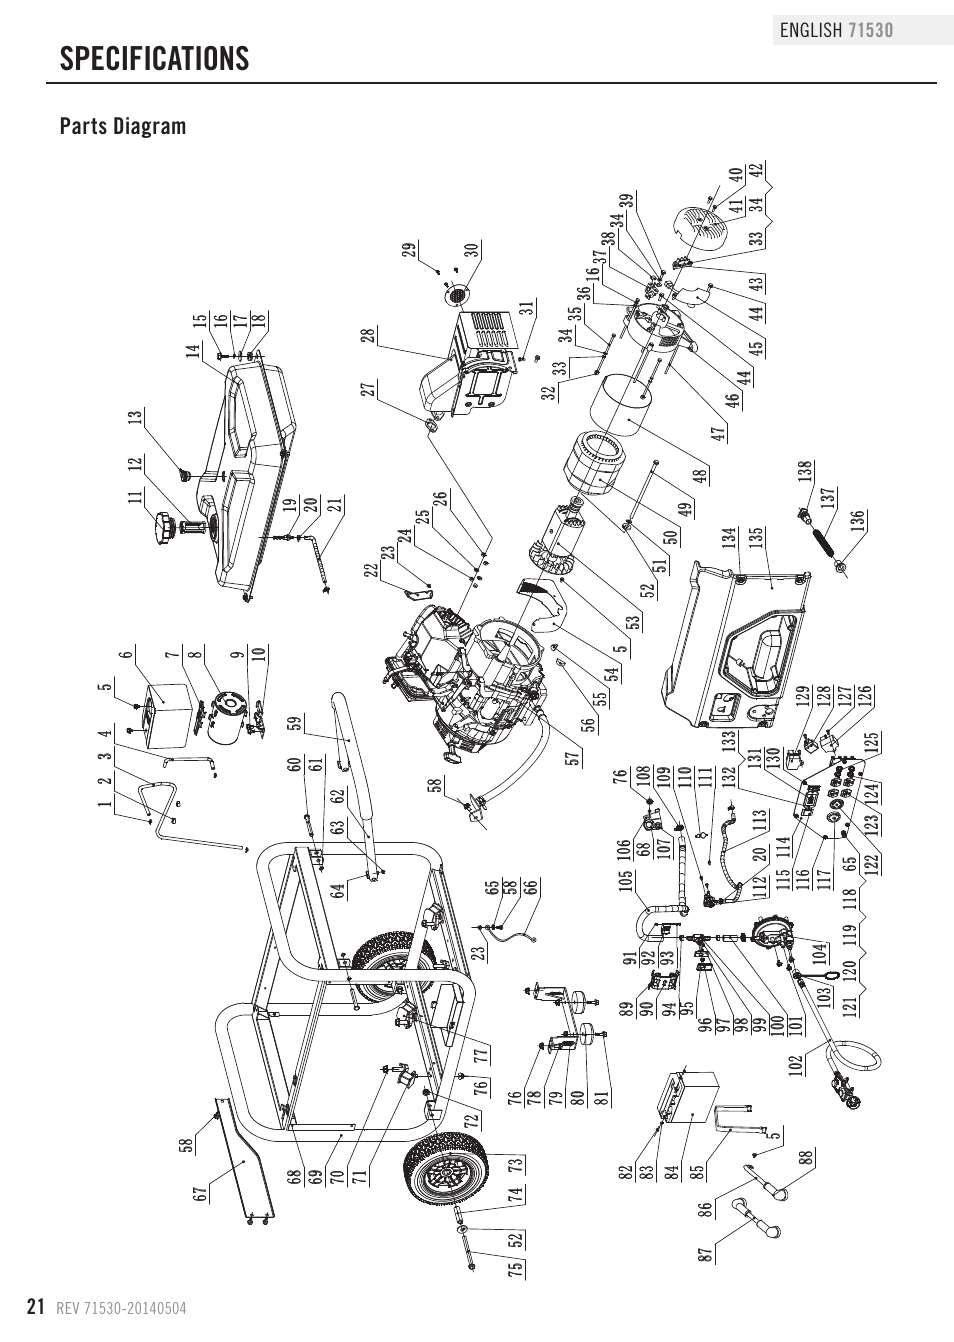 Specifications Parts Diagram Champion Power Equipment 71530 User